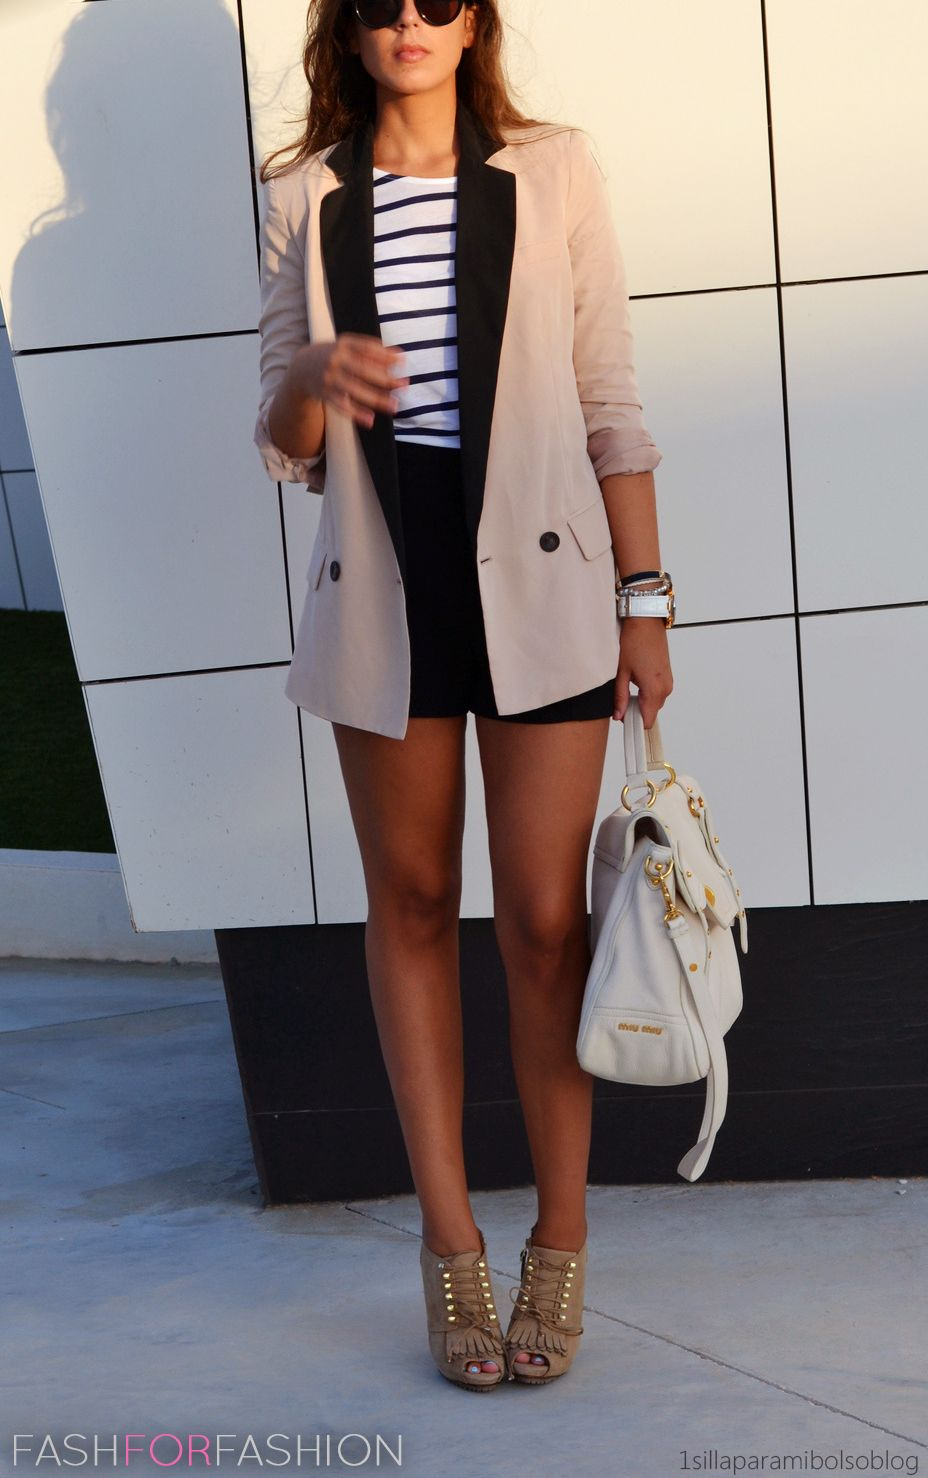 A great way to transition a blazer from winter to spring.